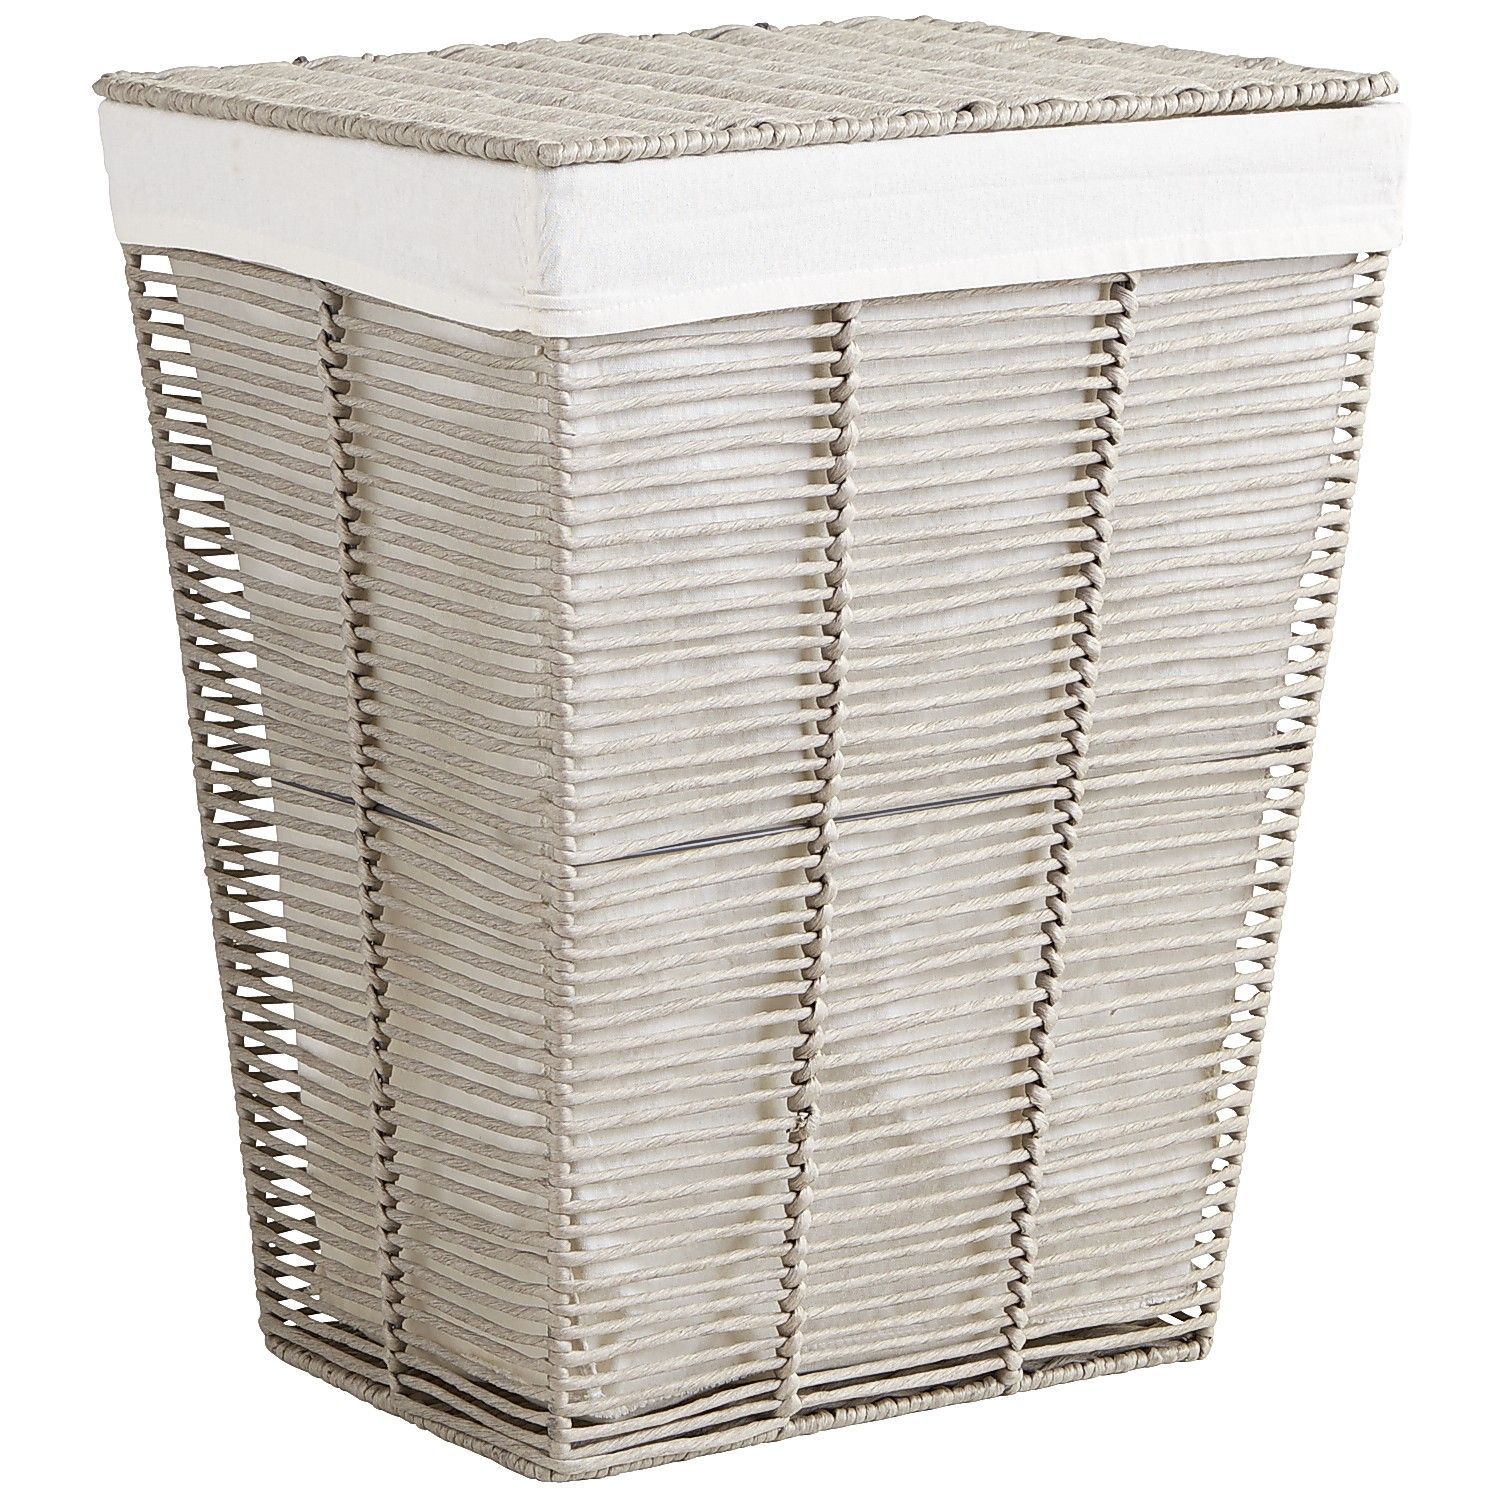 Wäschekorb Jysk Gray Paper Rope Laundry Hamper Products